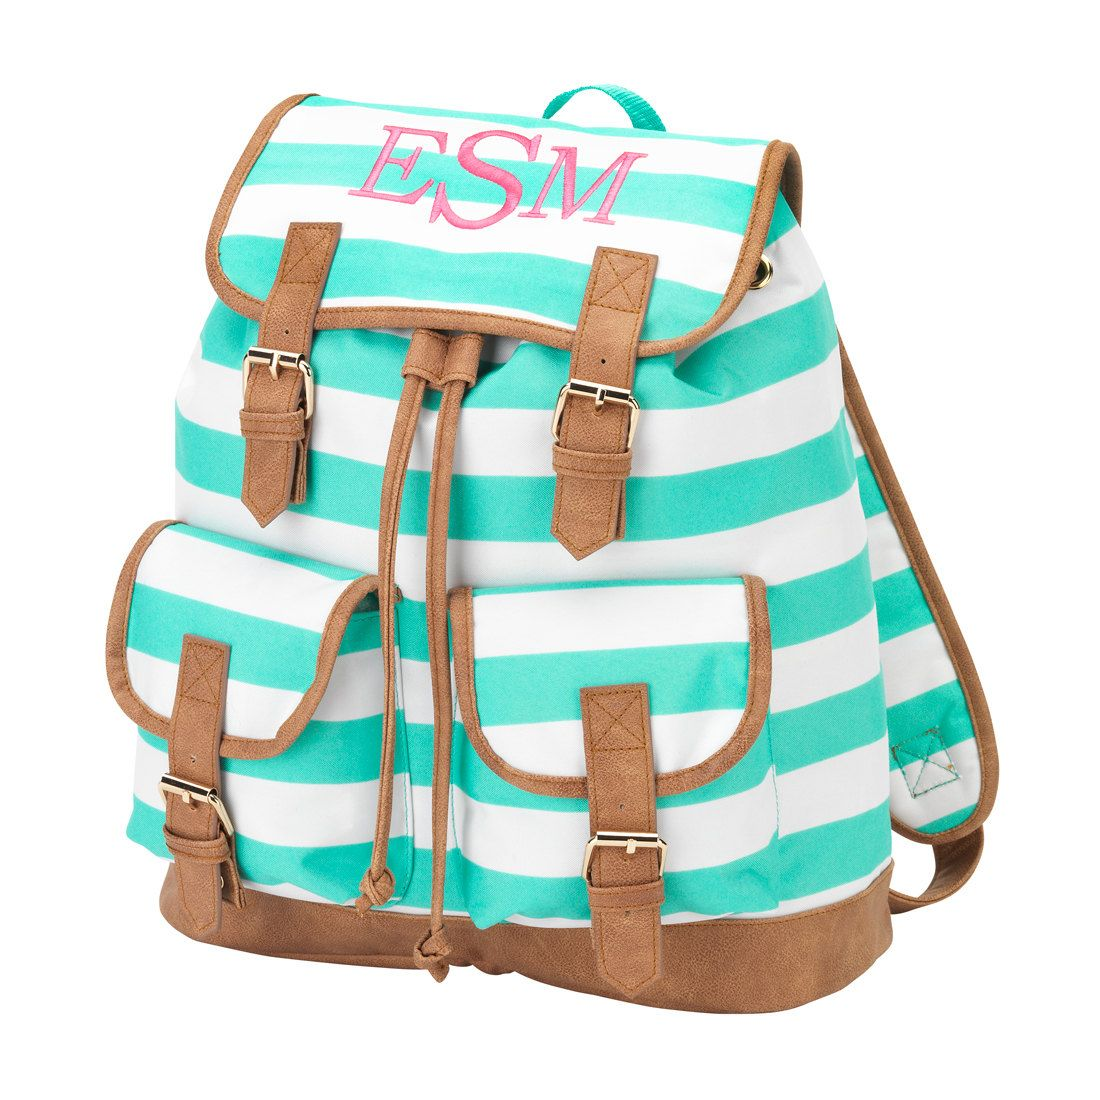 Cool Book Bags For Middle School - Hopeful Handbags   Stuff to Buy ...